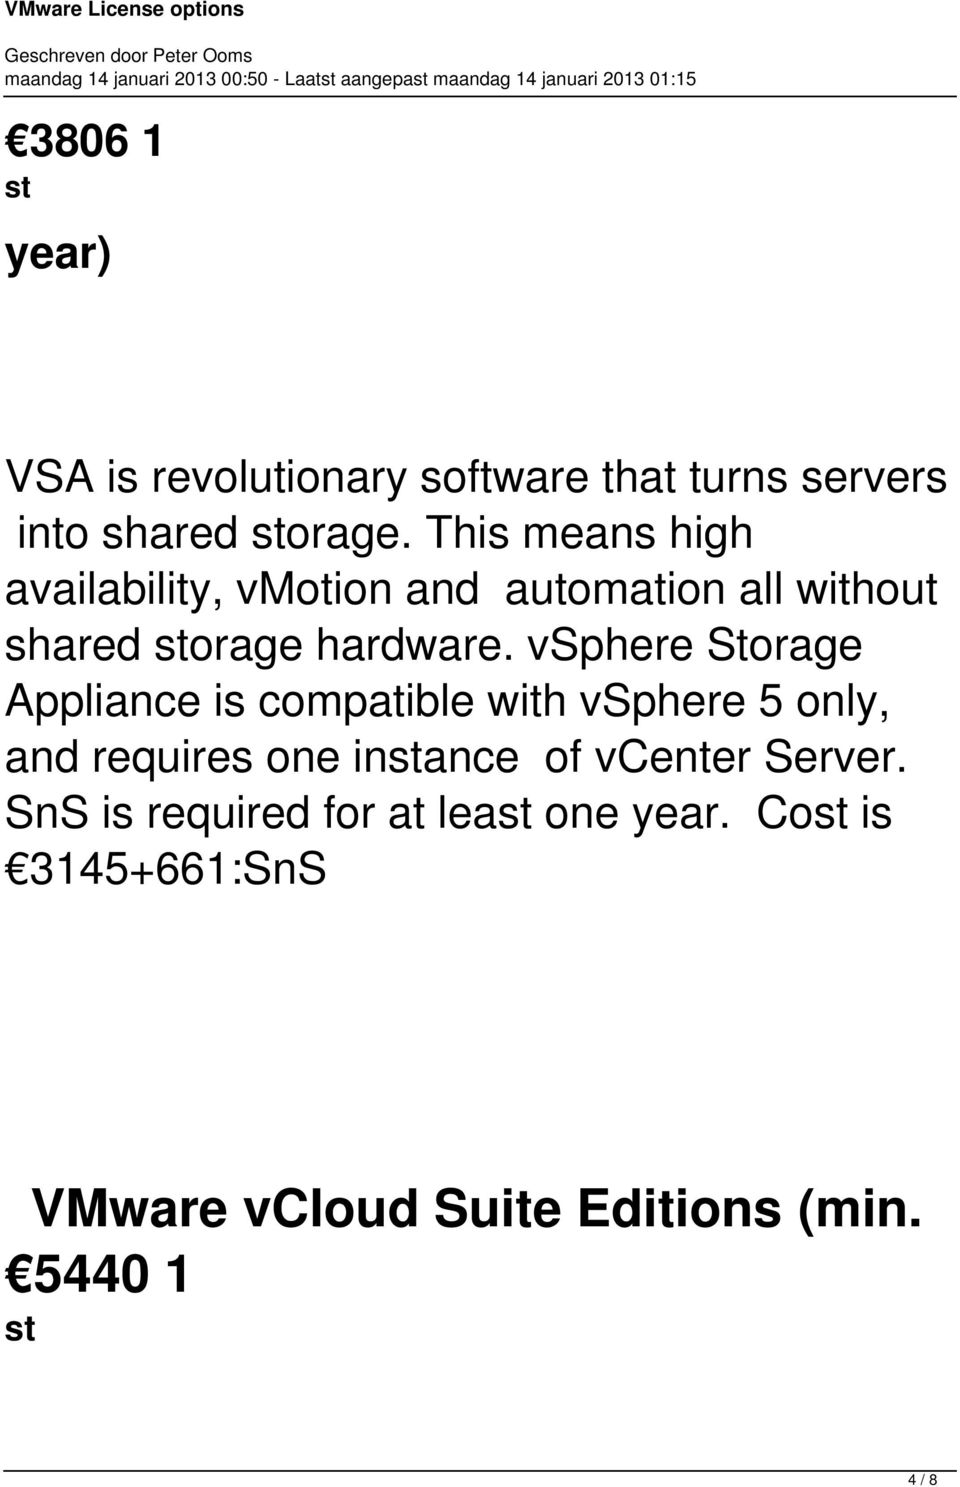 vsphere Storage Appliance is compatible with vsphere 5 only, and requires one instance of vcenter